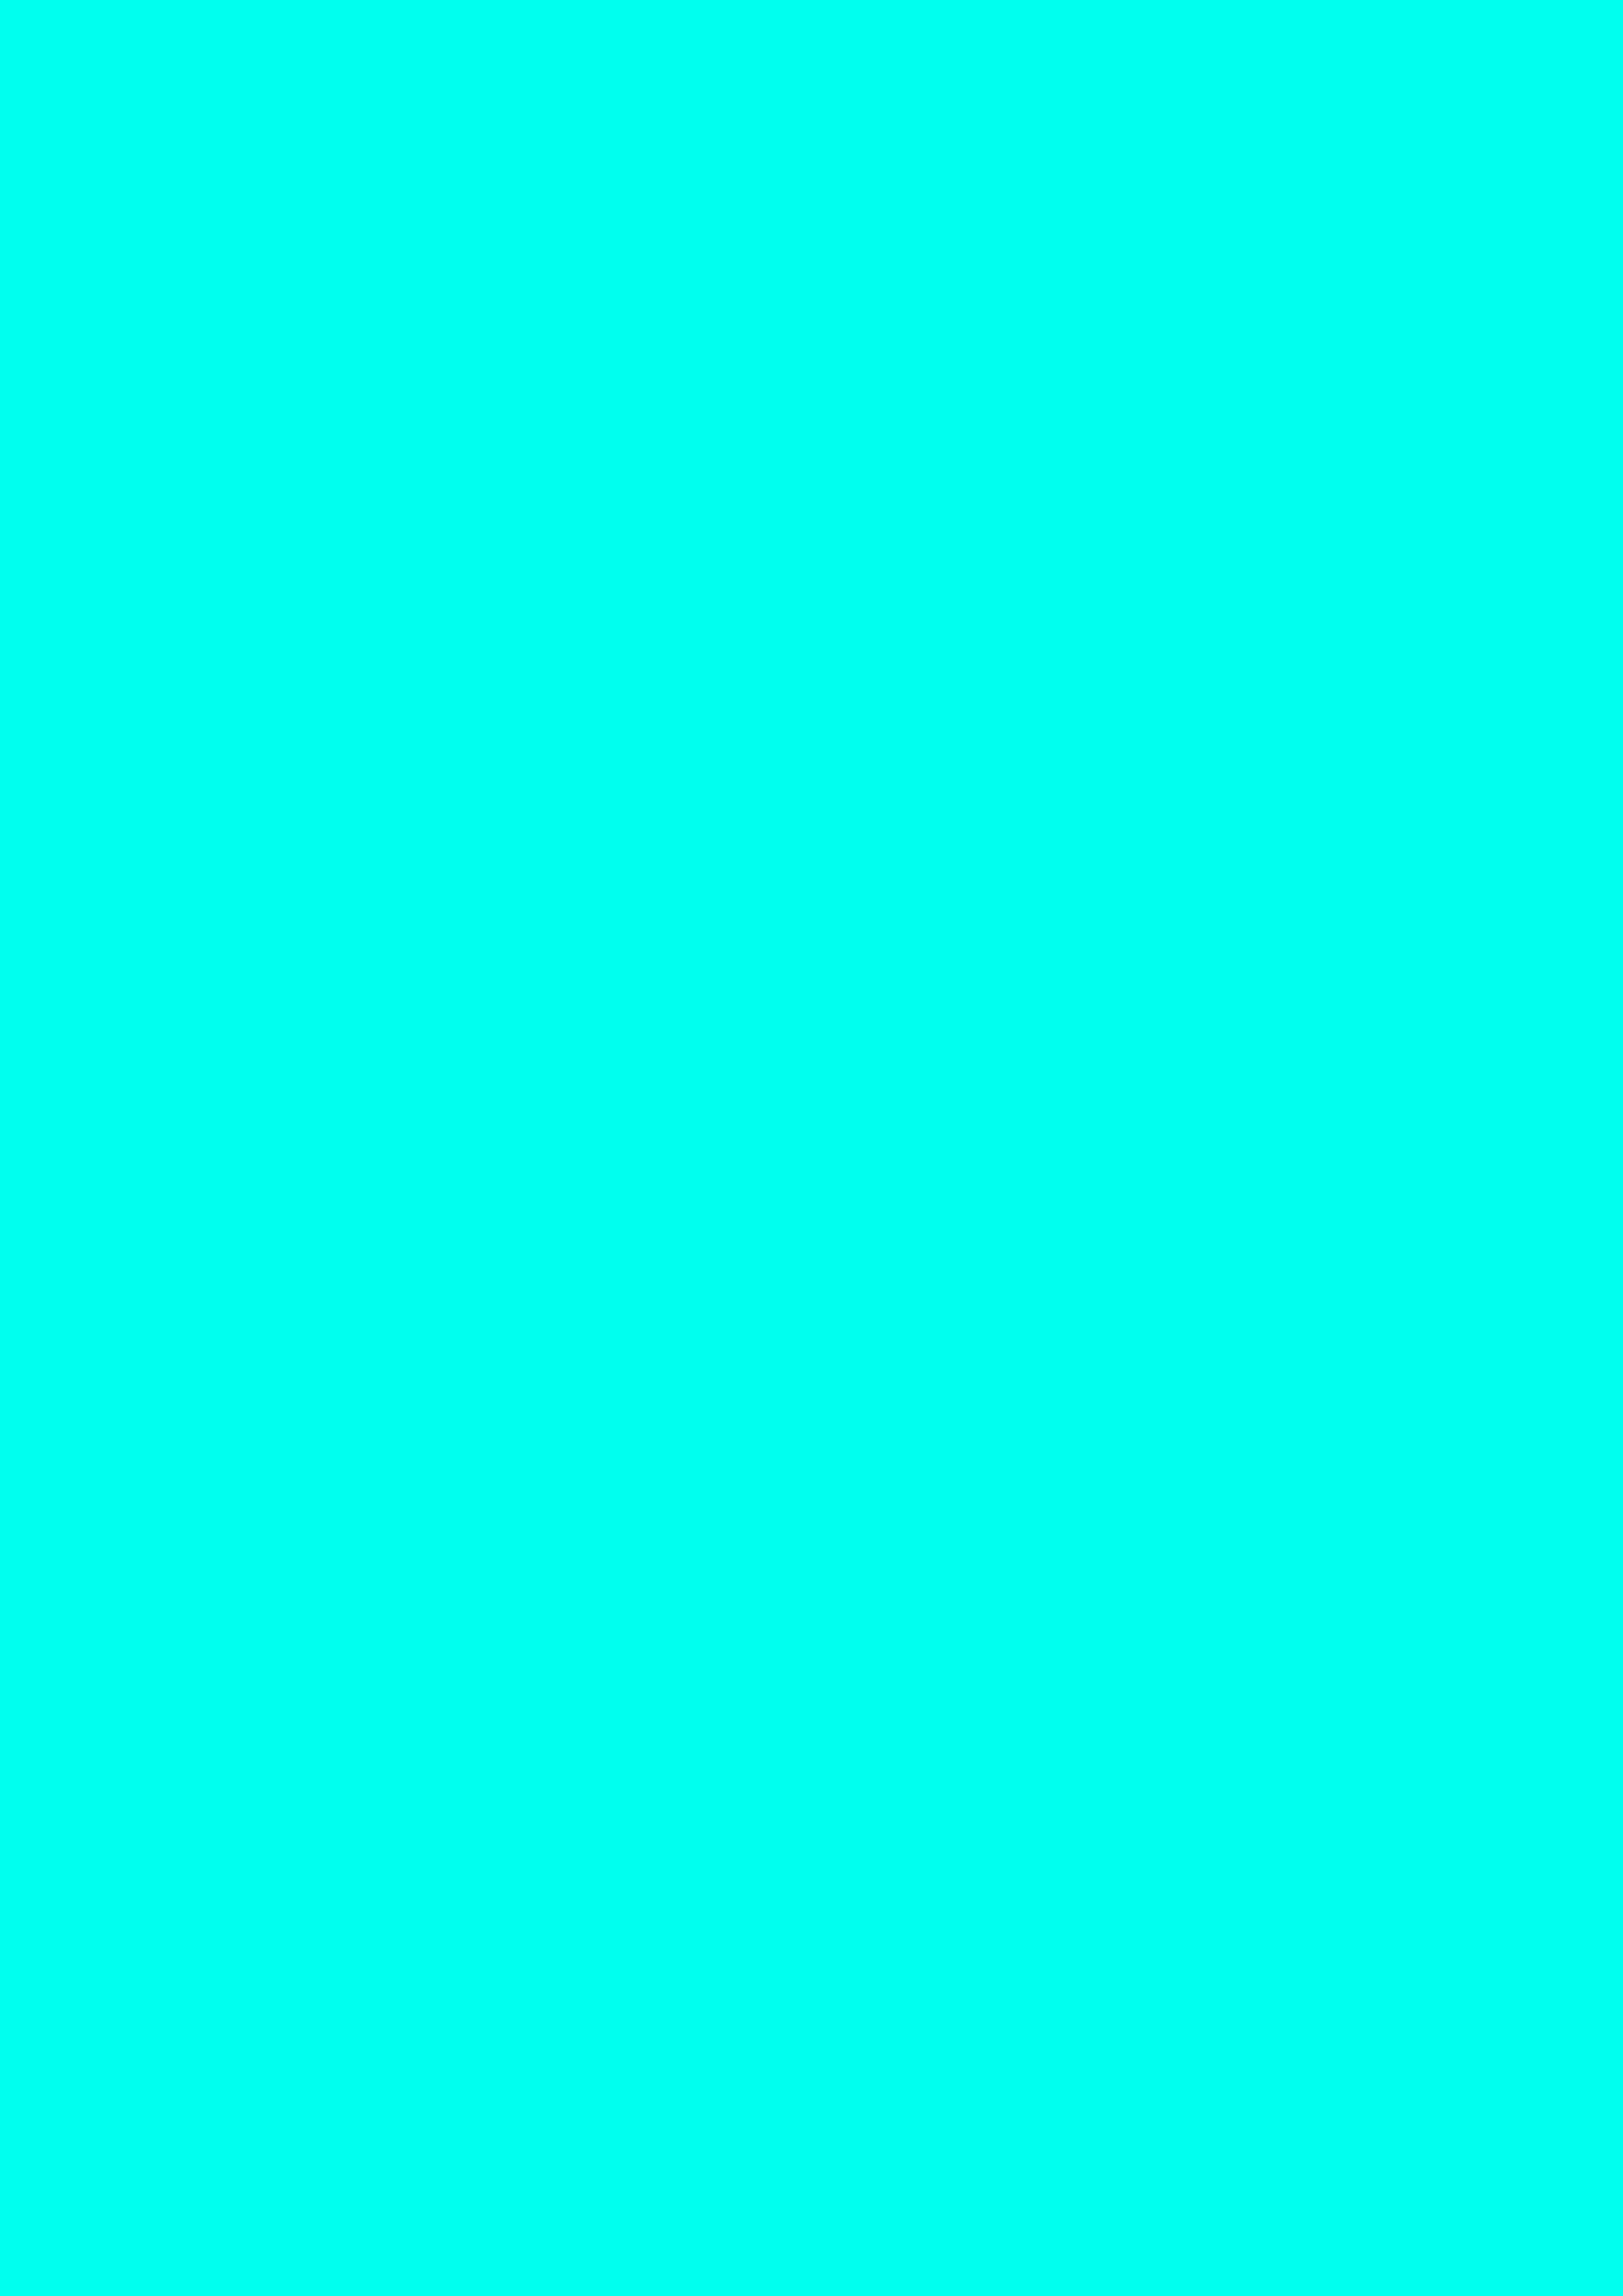 2480x3508 Turquoise Blue Solid Color Background